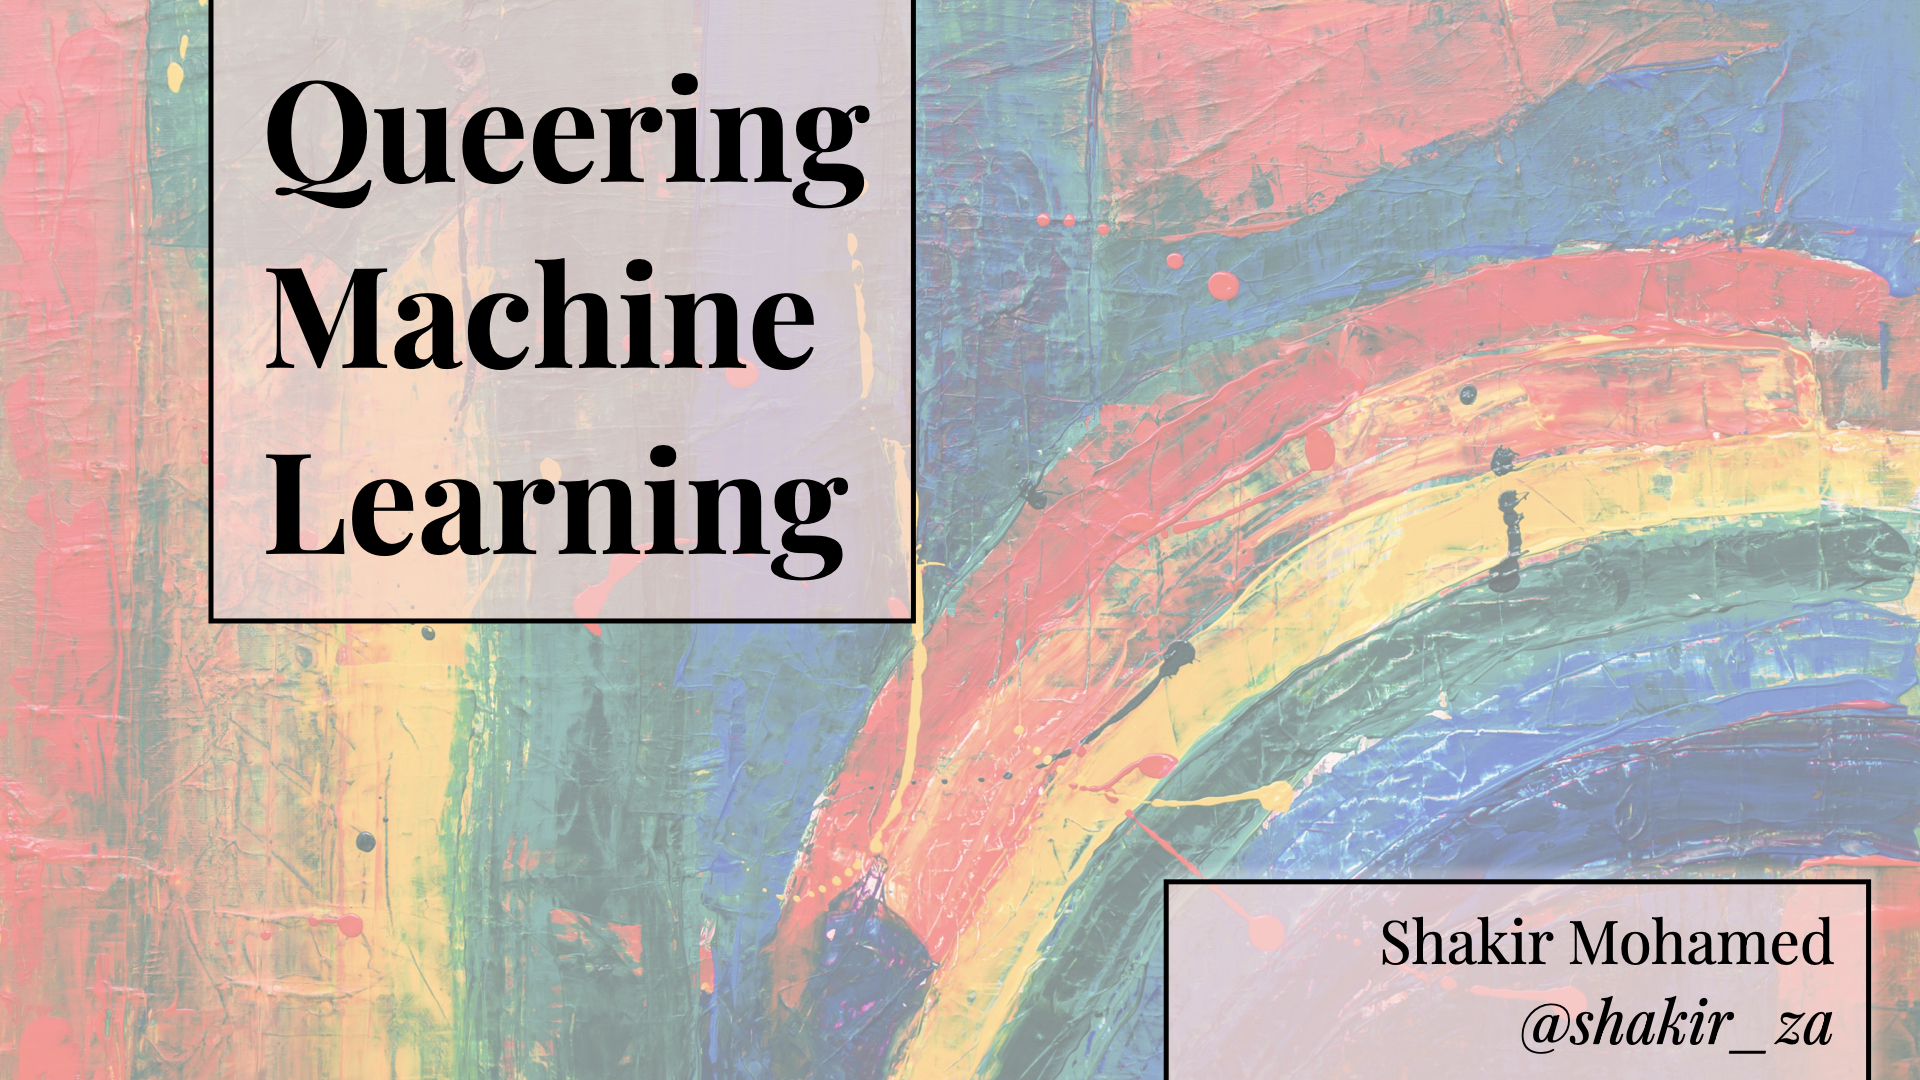 Queering Machine Learning